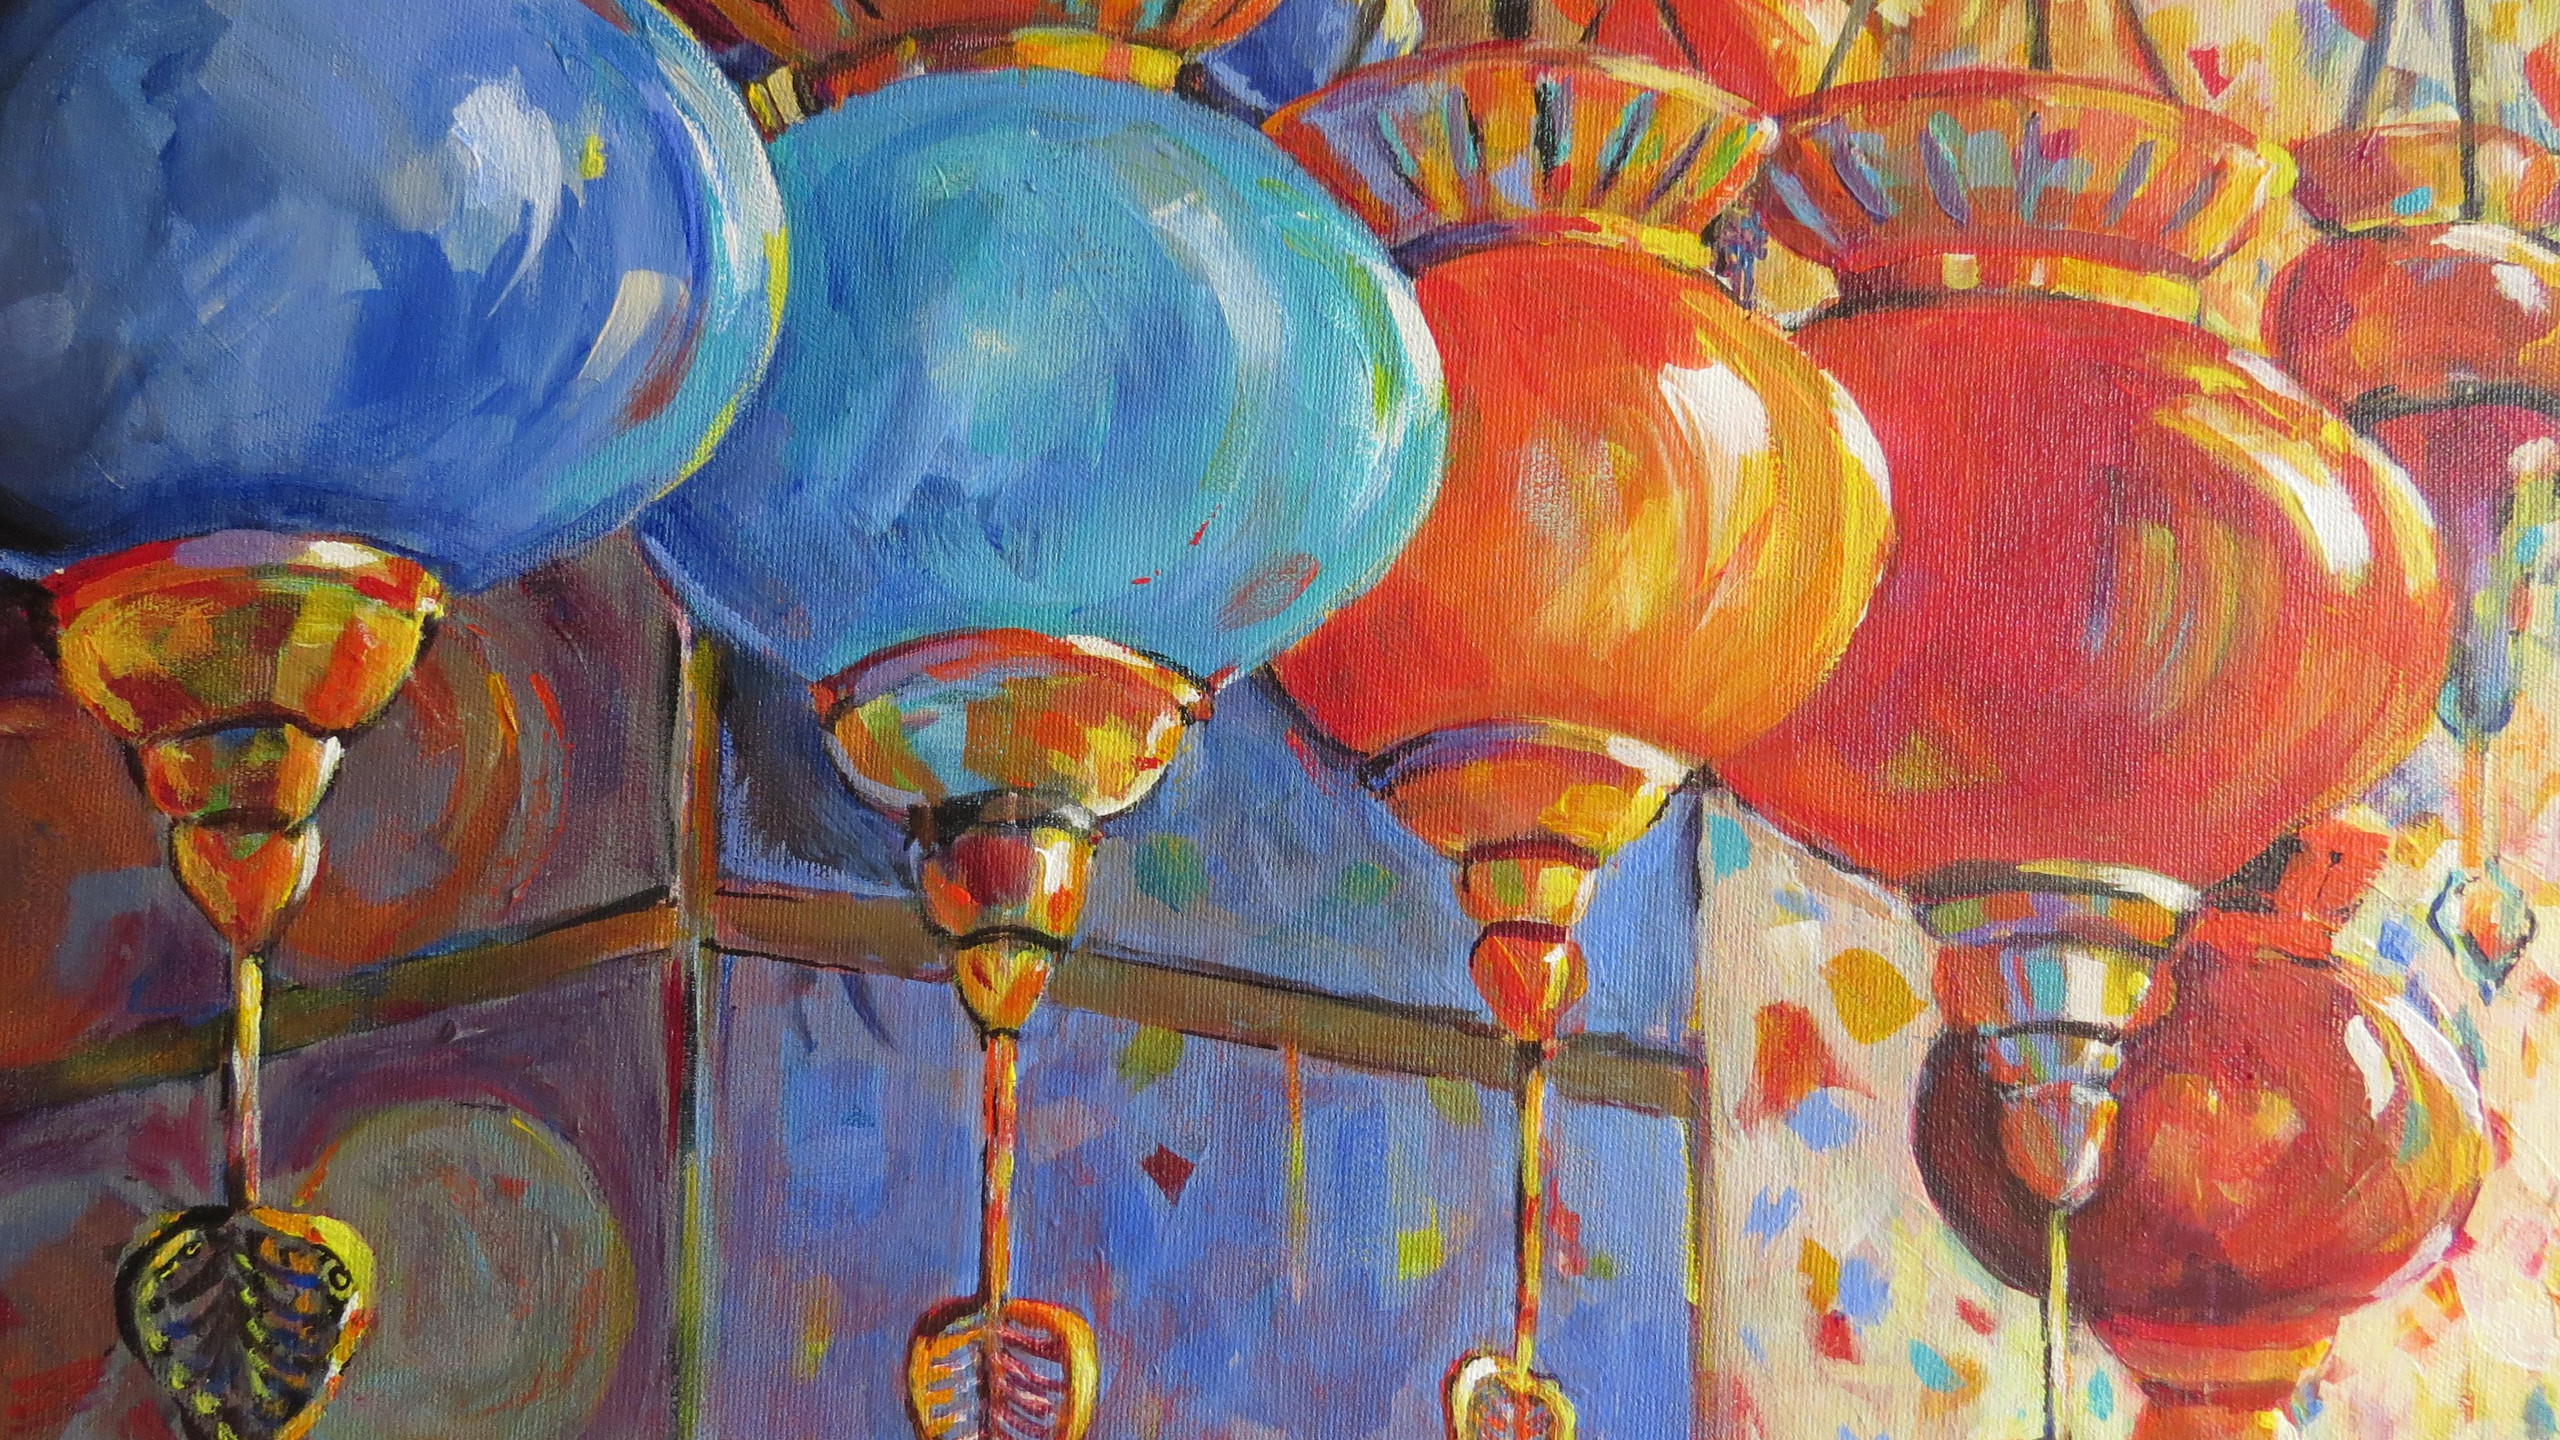 DeJong, Ingrid - The Turkish Lamp and Plate Show